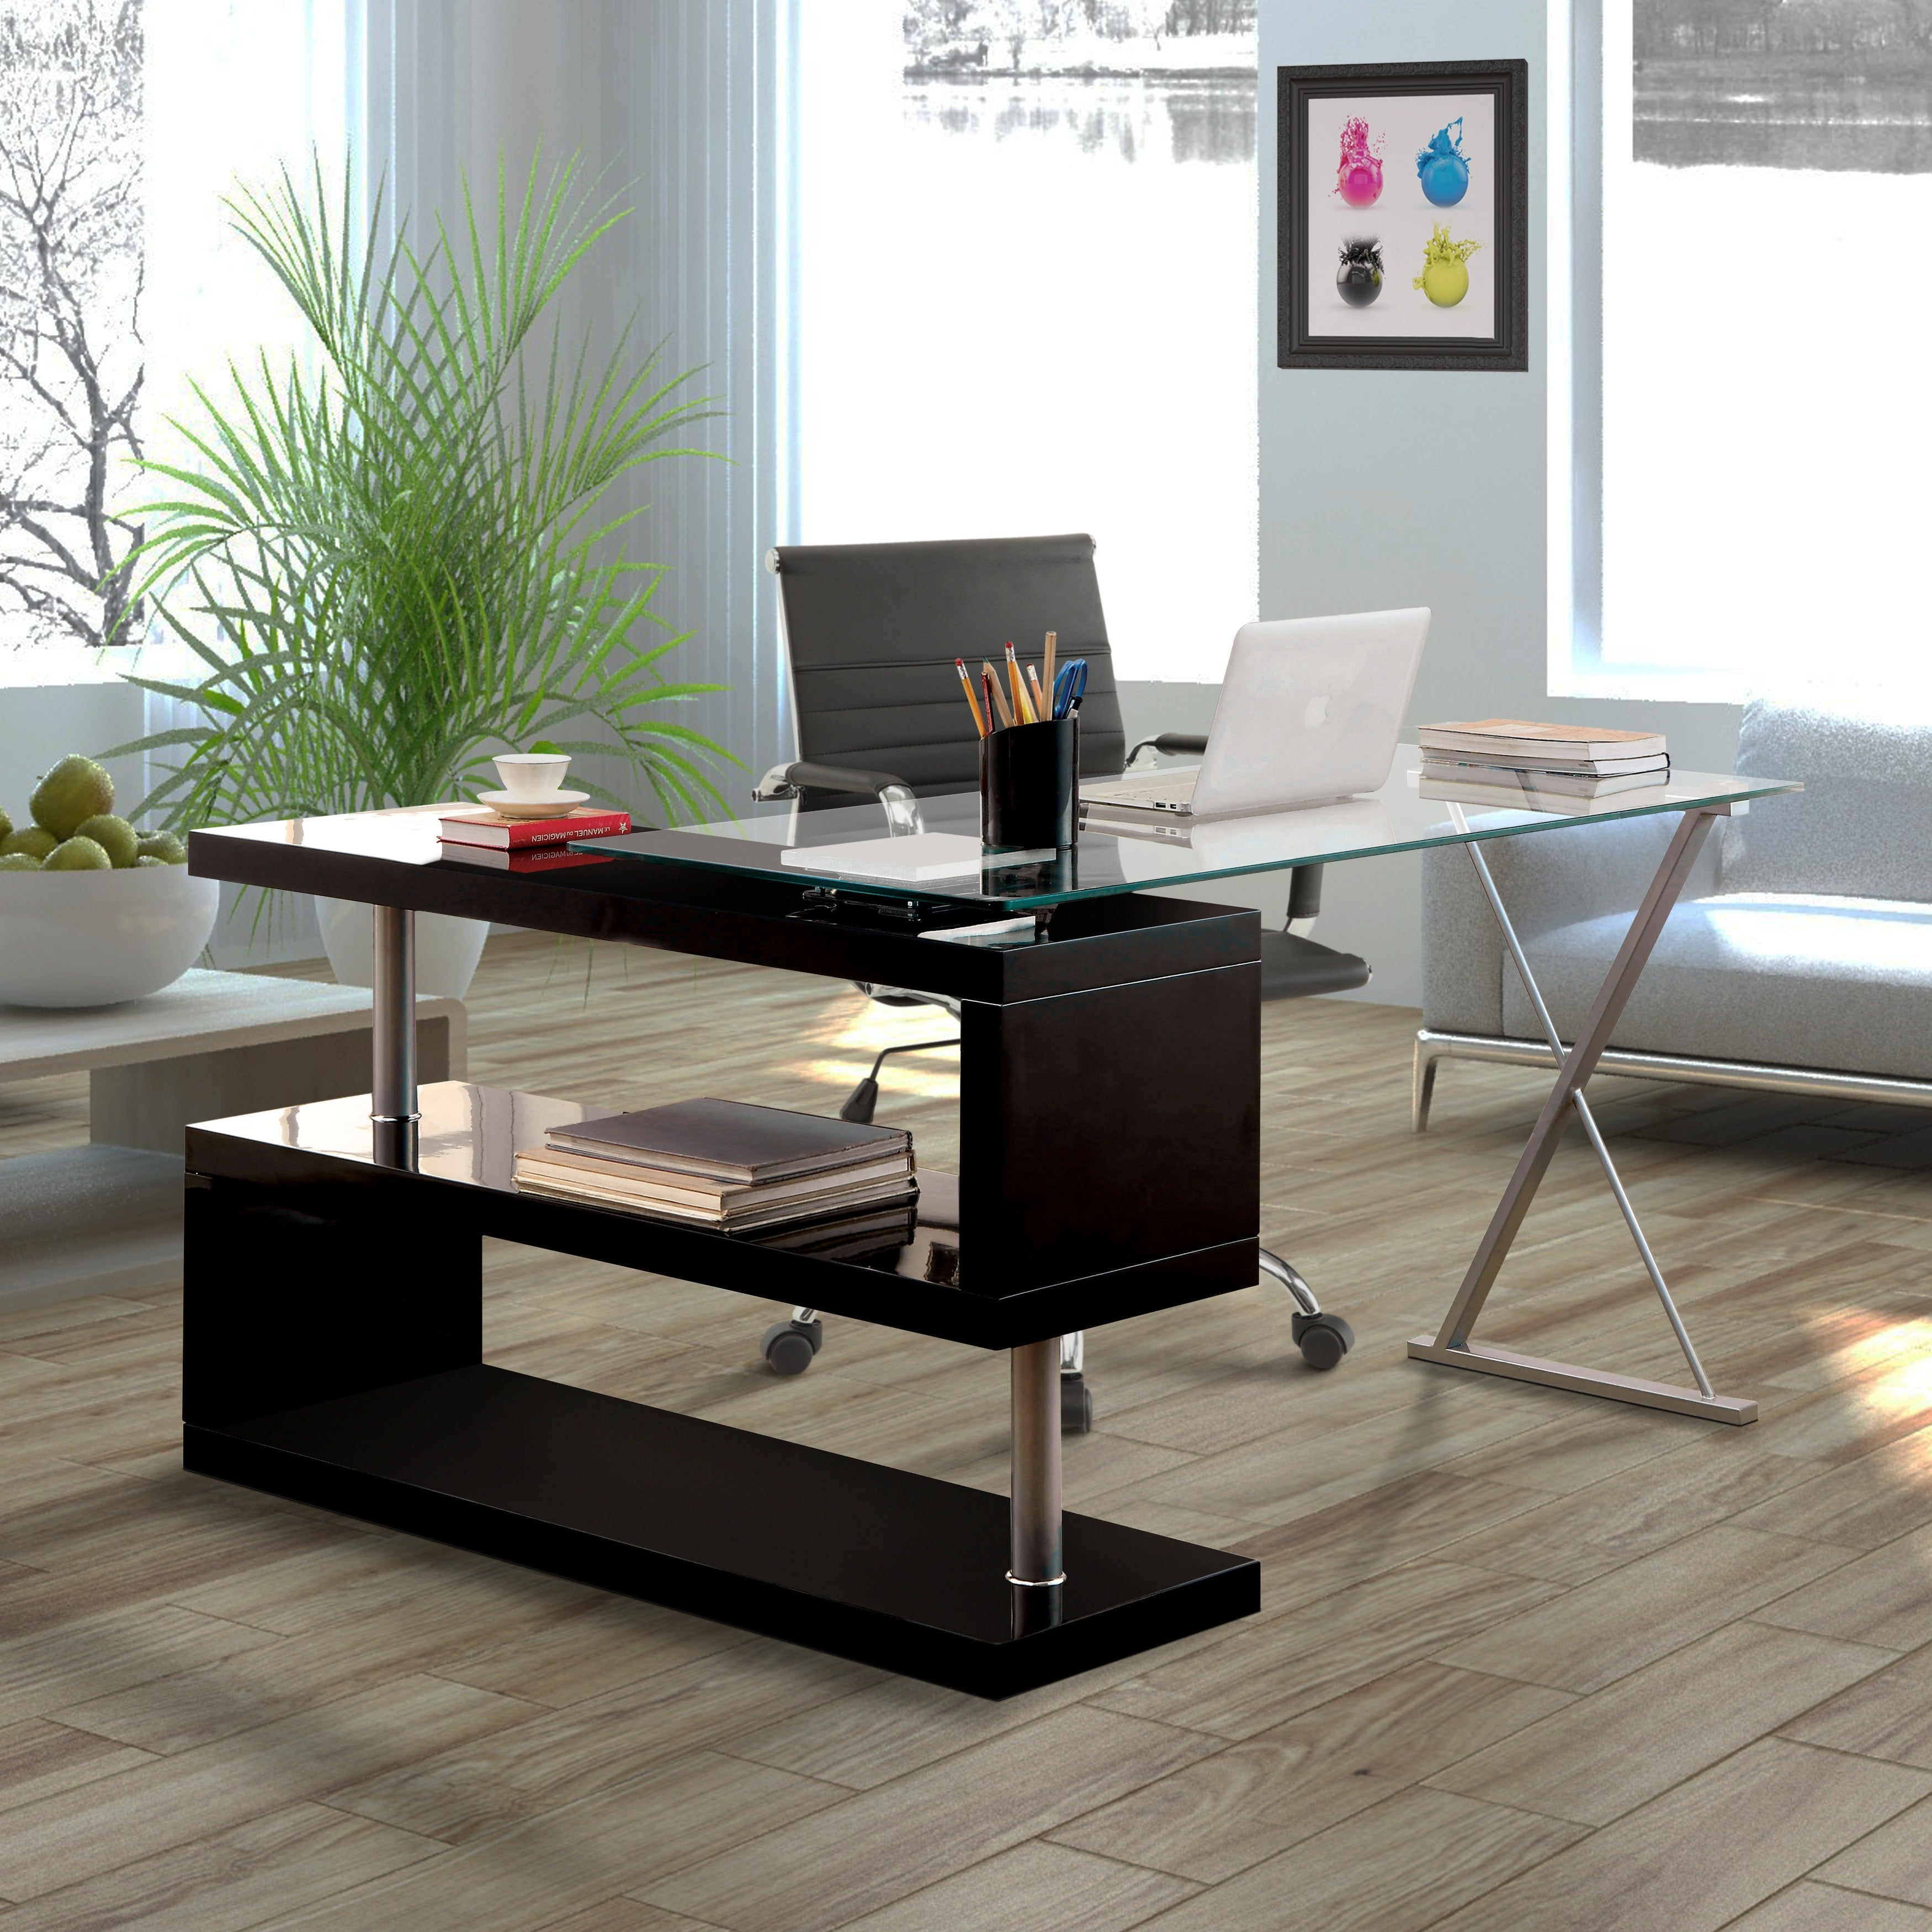 Convertible furniture desk images for Furnishing america